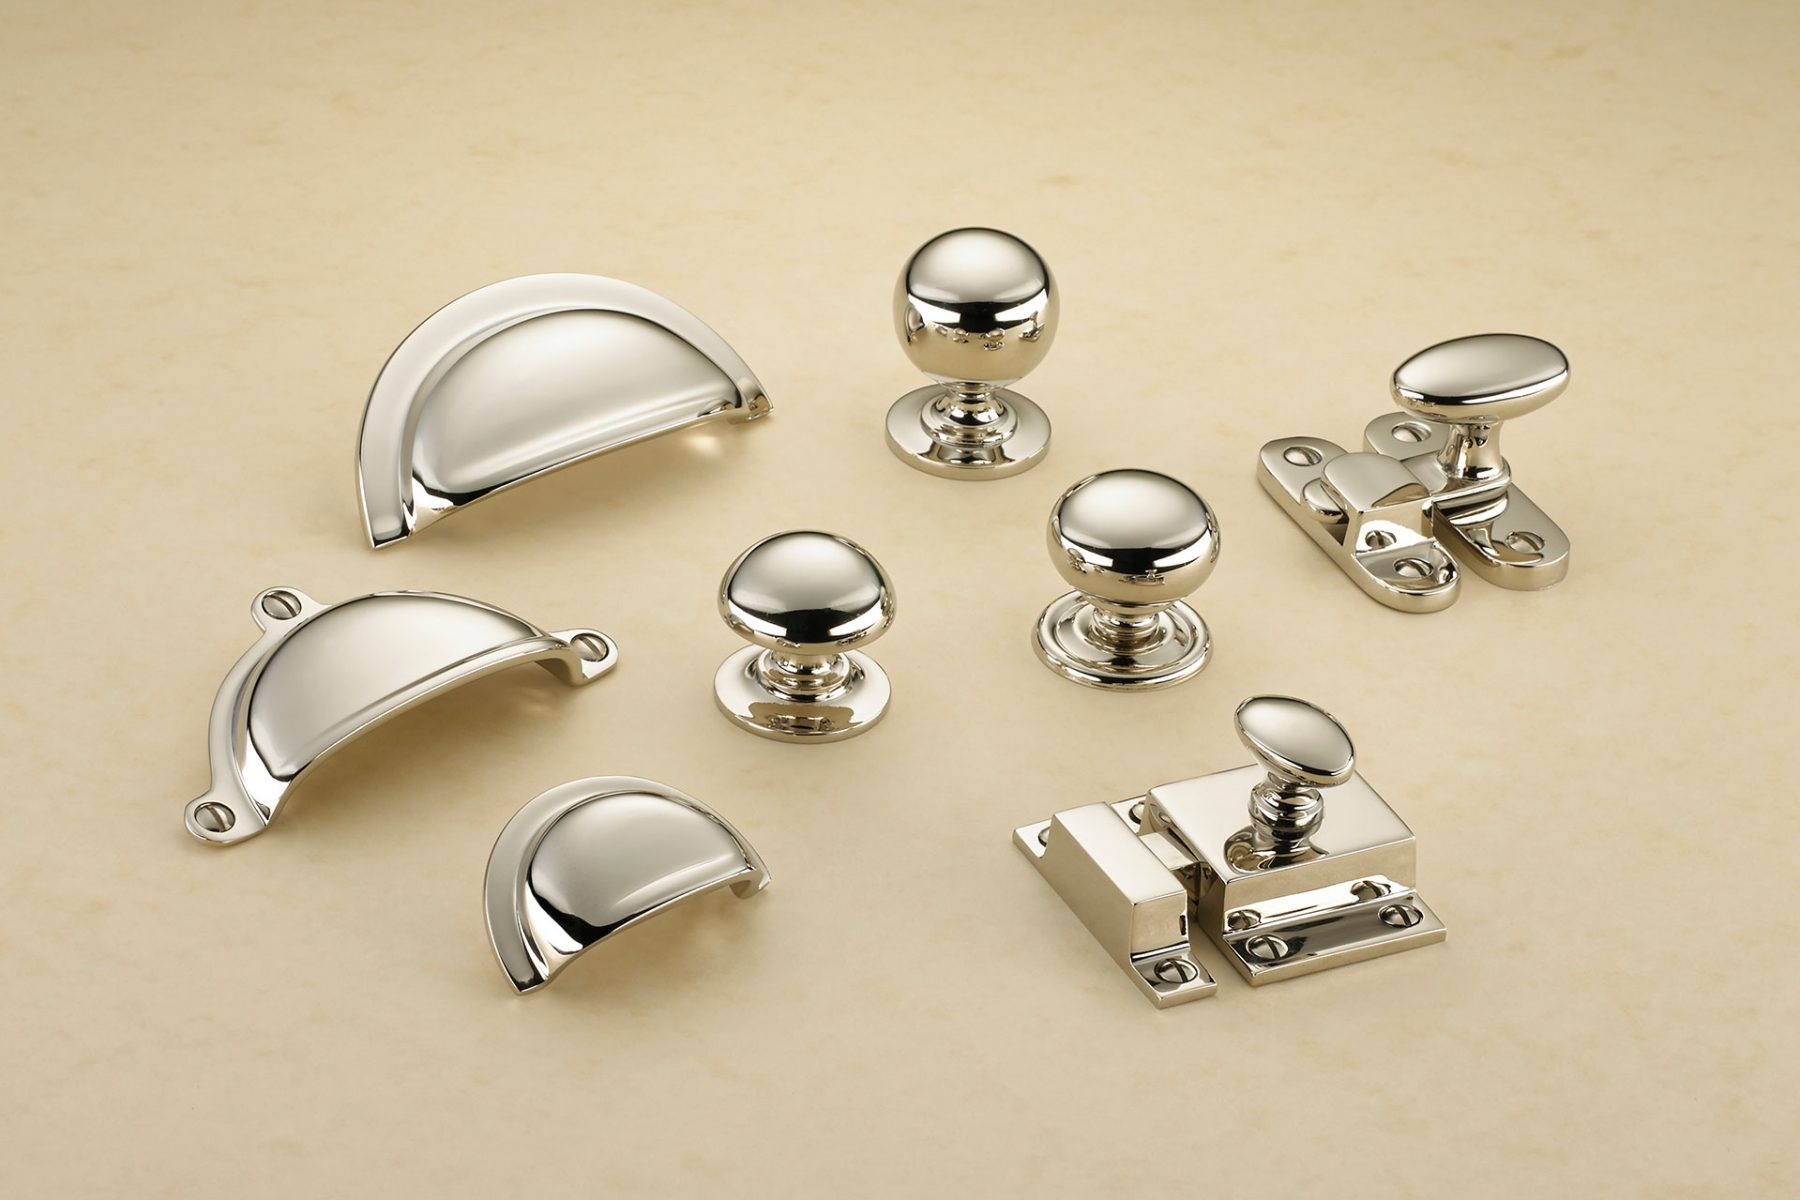 Kitchen drawer handles